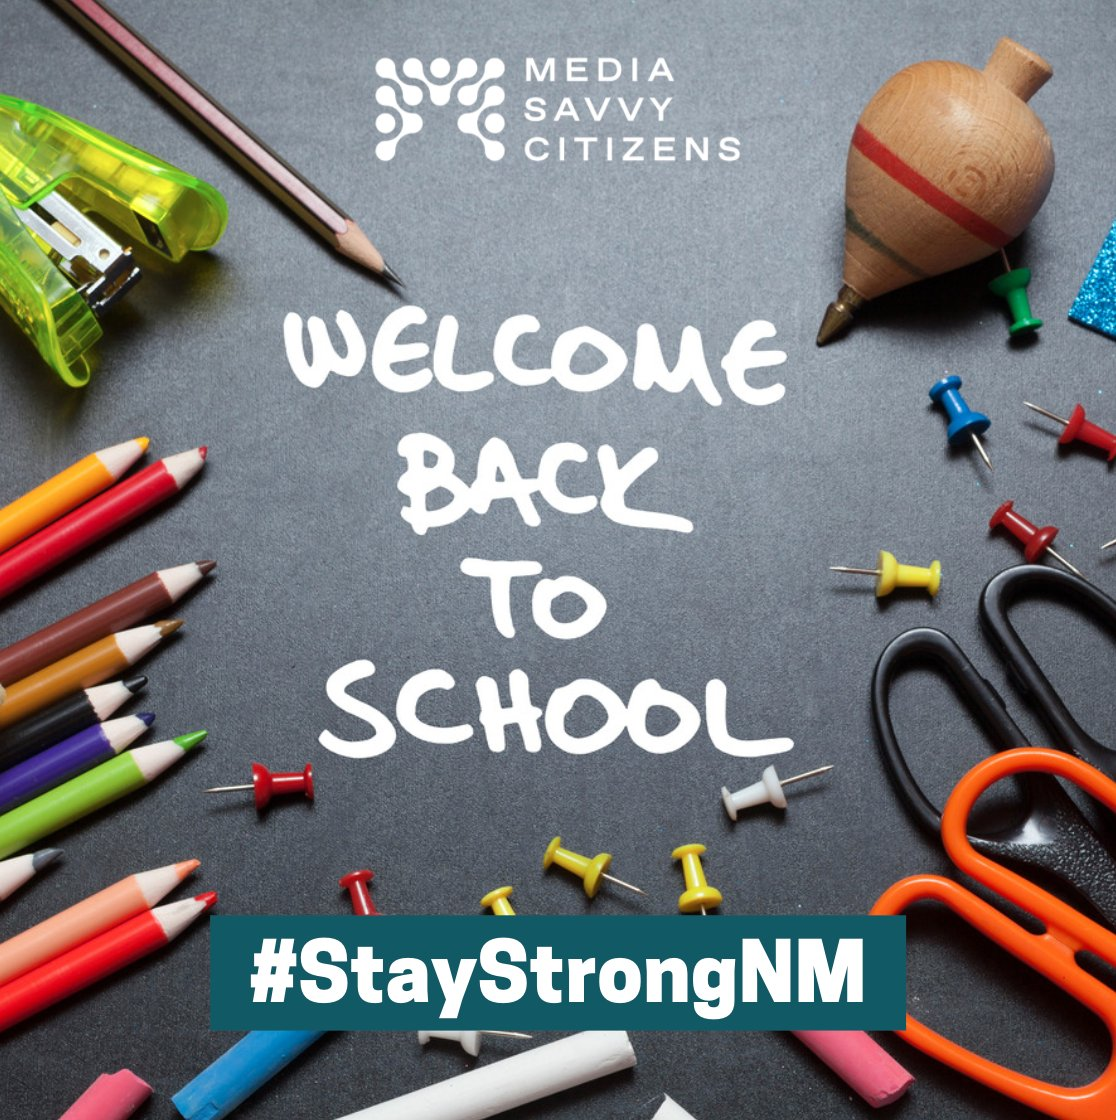 Welcome back to school! Wishing all educators and students a safe and healthy school year. The pandemic has taught us all how to adapt to online-learning and find new ways to stay engaged while at home. #StayStrongNM, we can do this. https://t.co/aGMEii8Vty